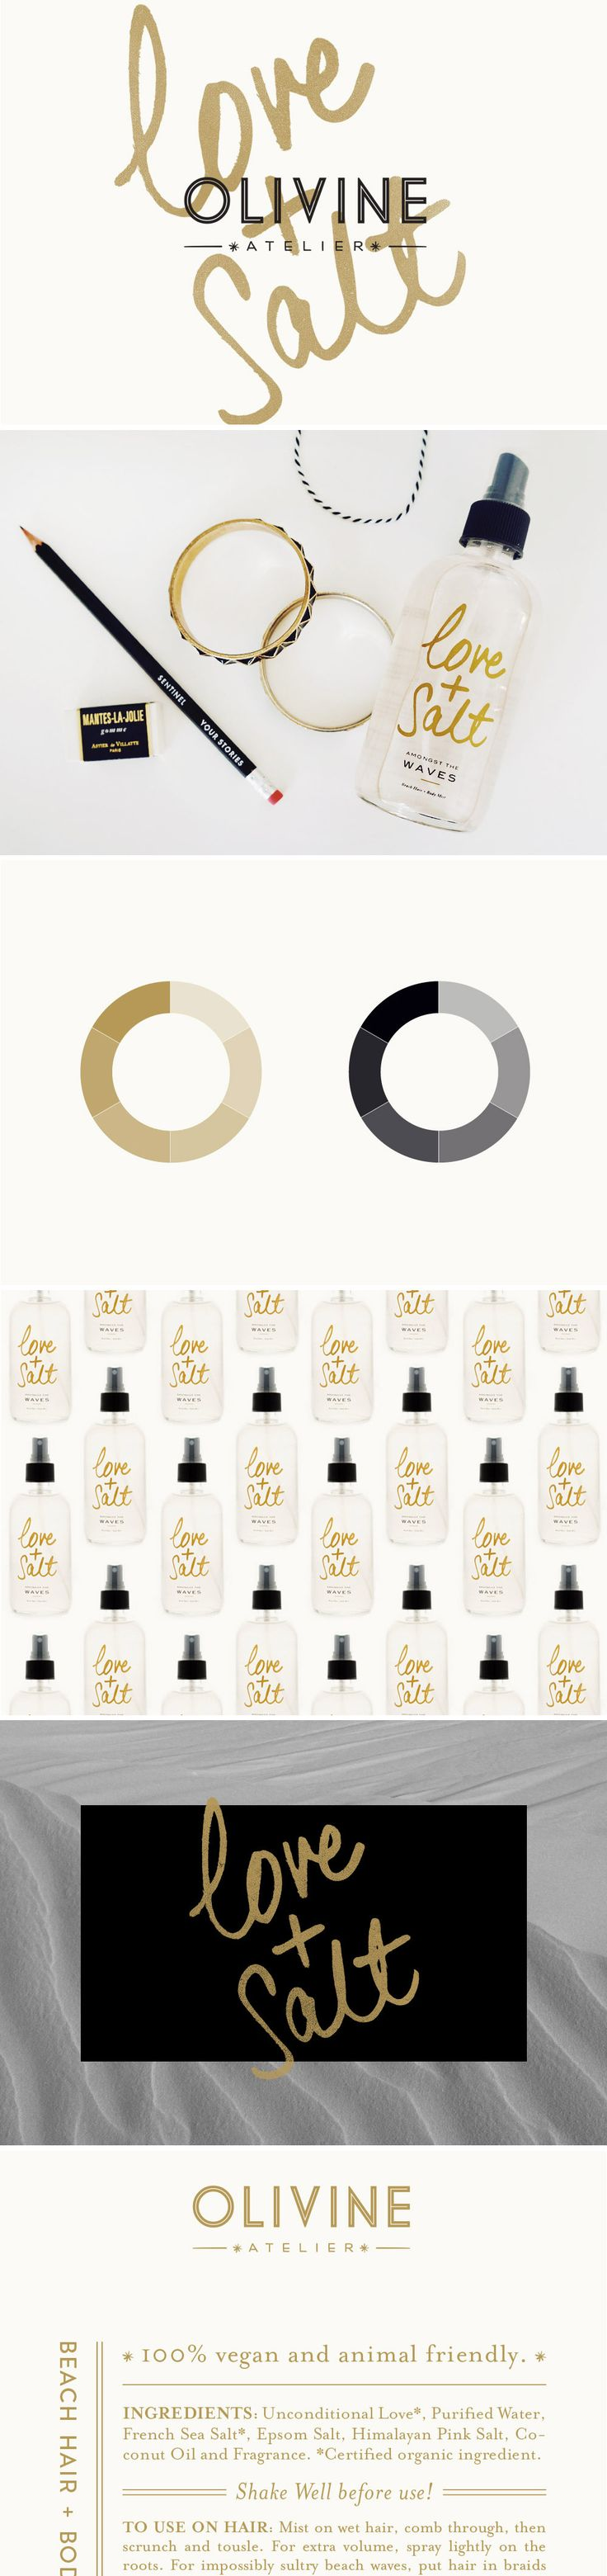 Atelier Olivine by We Are Branch | How to use colour to sell more, the brand stylist